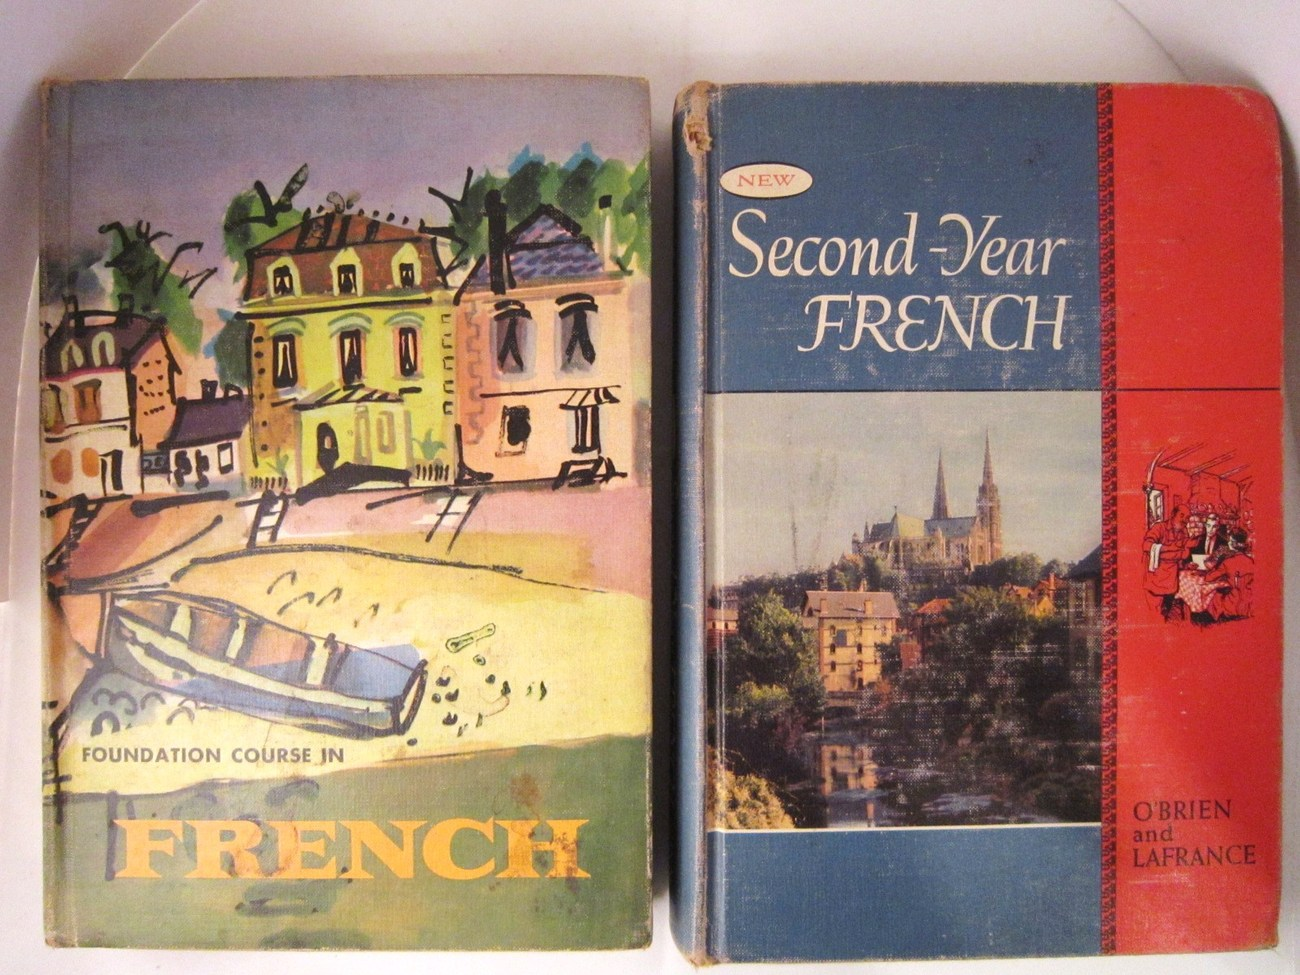 Foundation Course in French 1957 and New Second Year French 1959